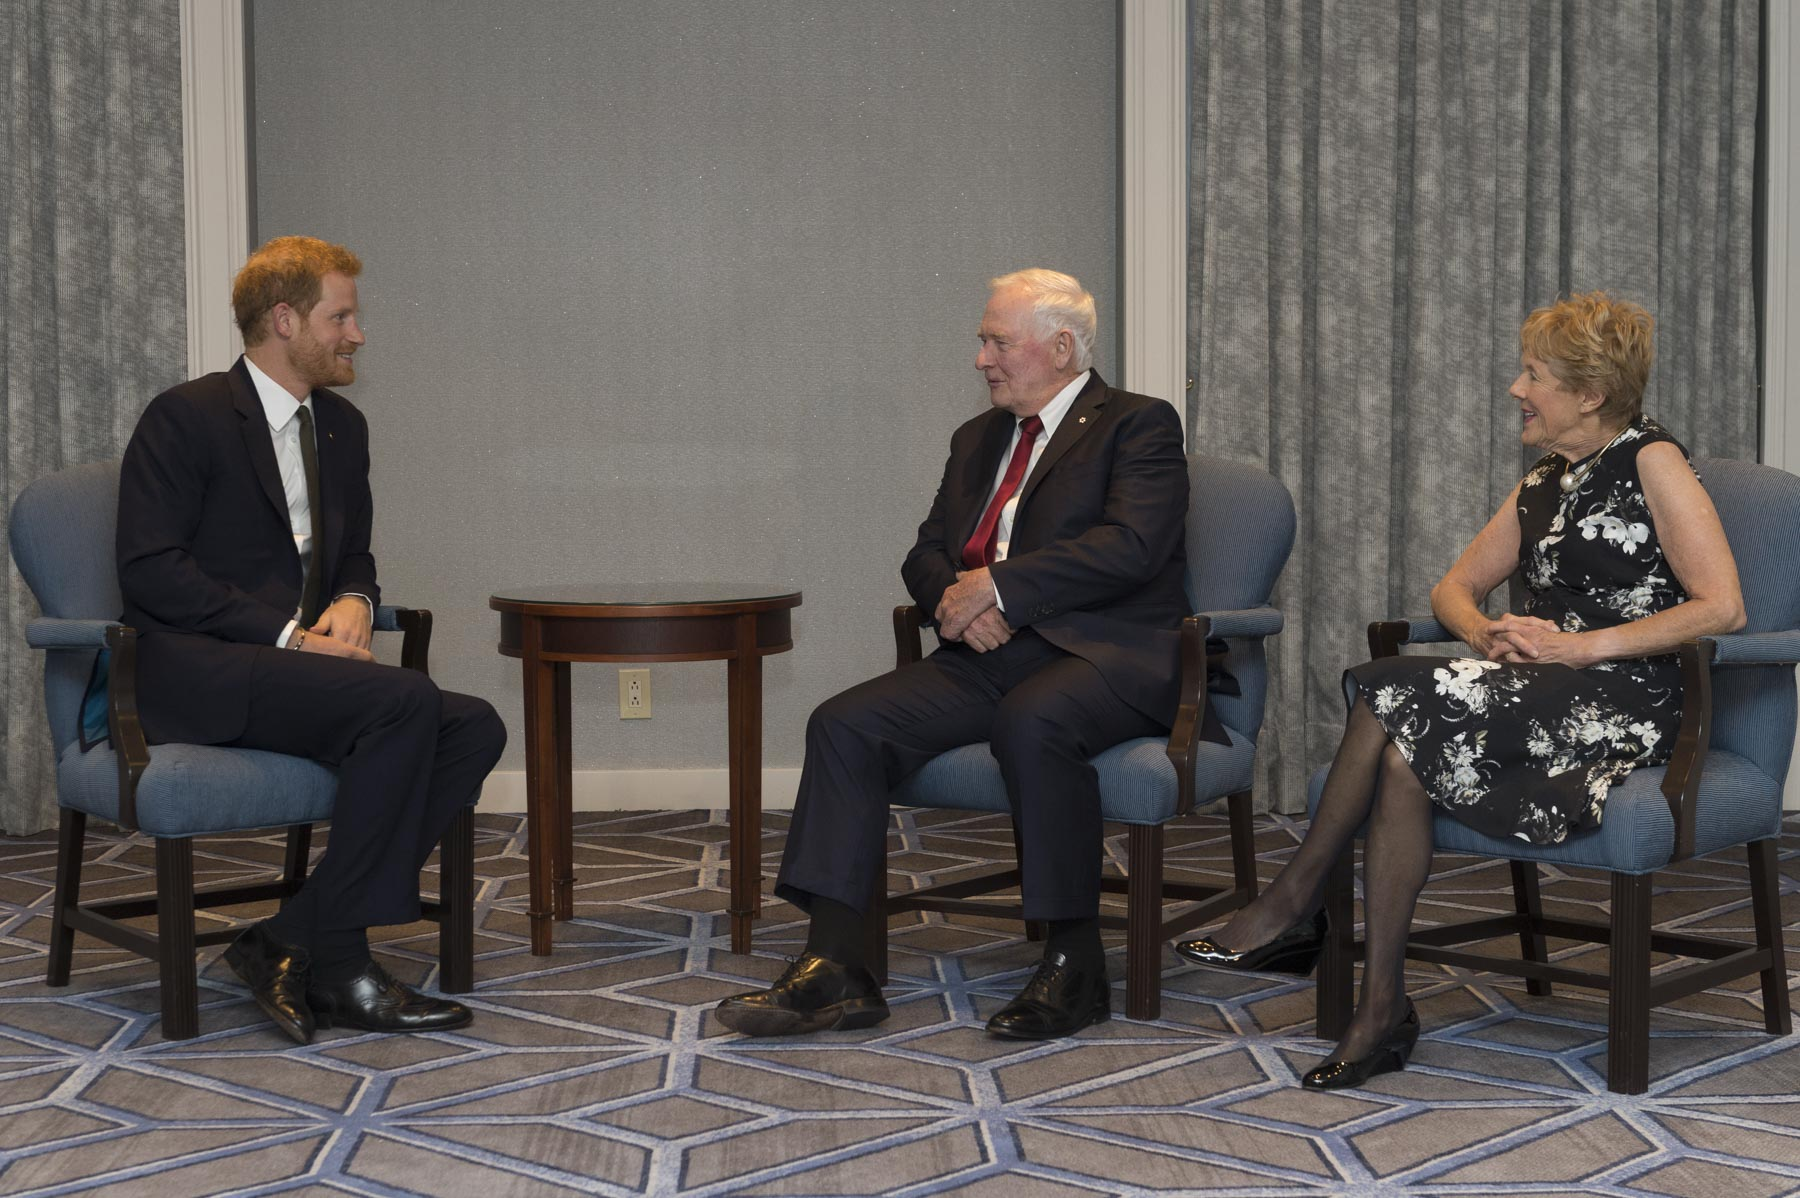 Their Excellencies the Right Honourable David Johnston, Governor General and Commander-in-Chief of Canada, and Mrs. Sharon Johnston are in Toronto to attend the 2017 Invictus Games on September 23 and 24. Prior to the opening ceremony, they met with His Royal Highness Prince Henry of Wales, Patron of these Games.